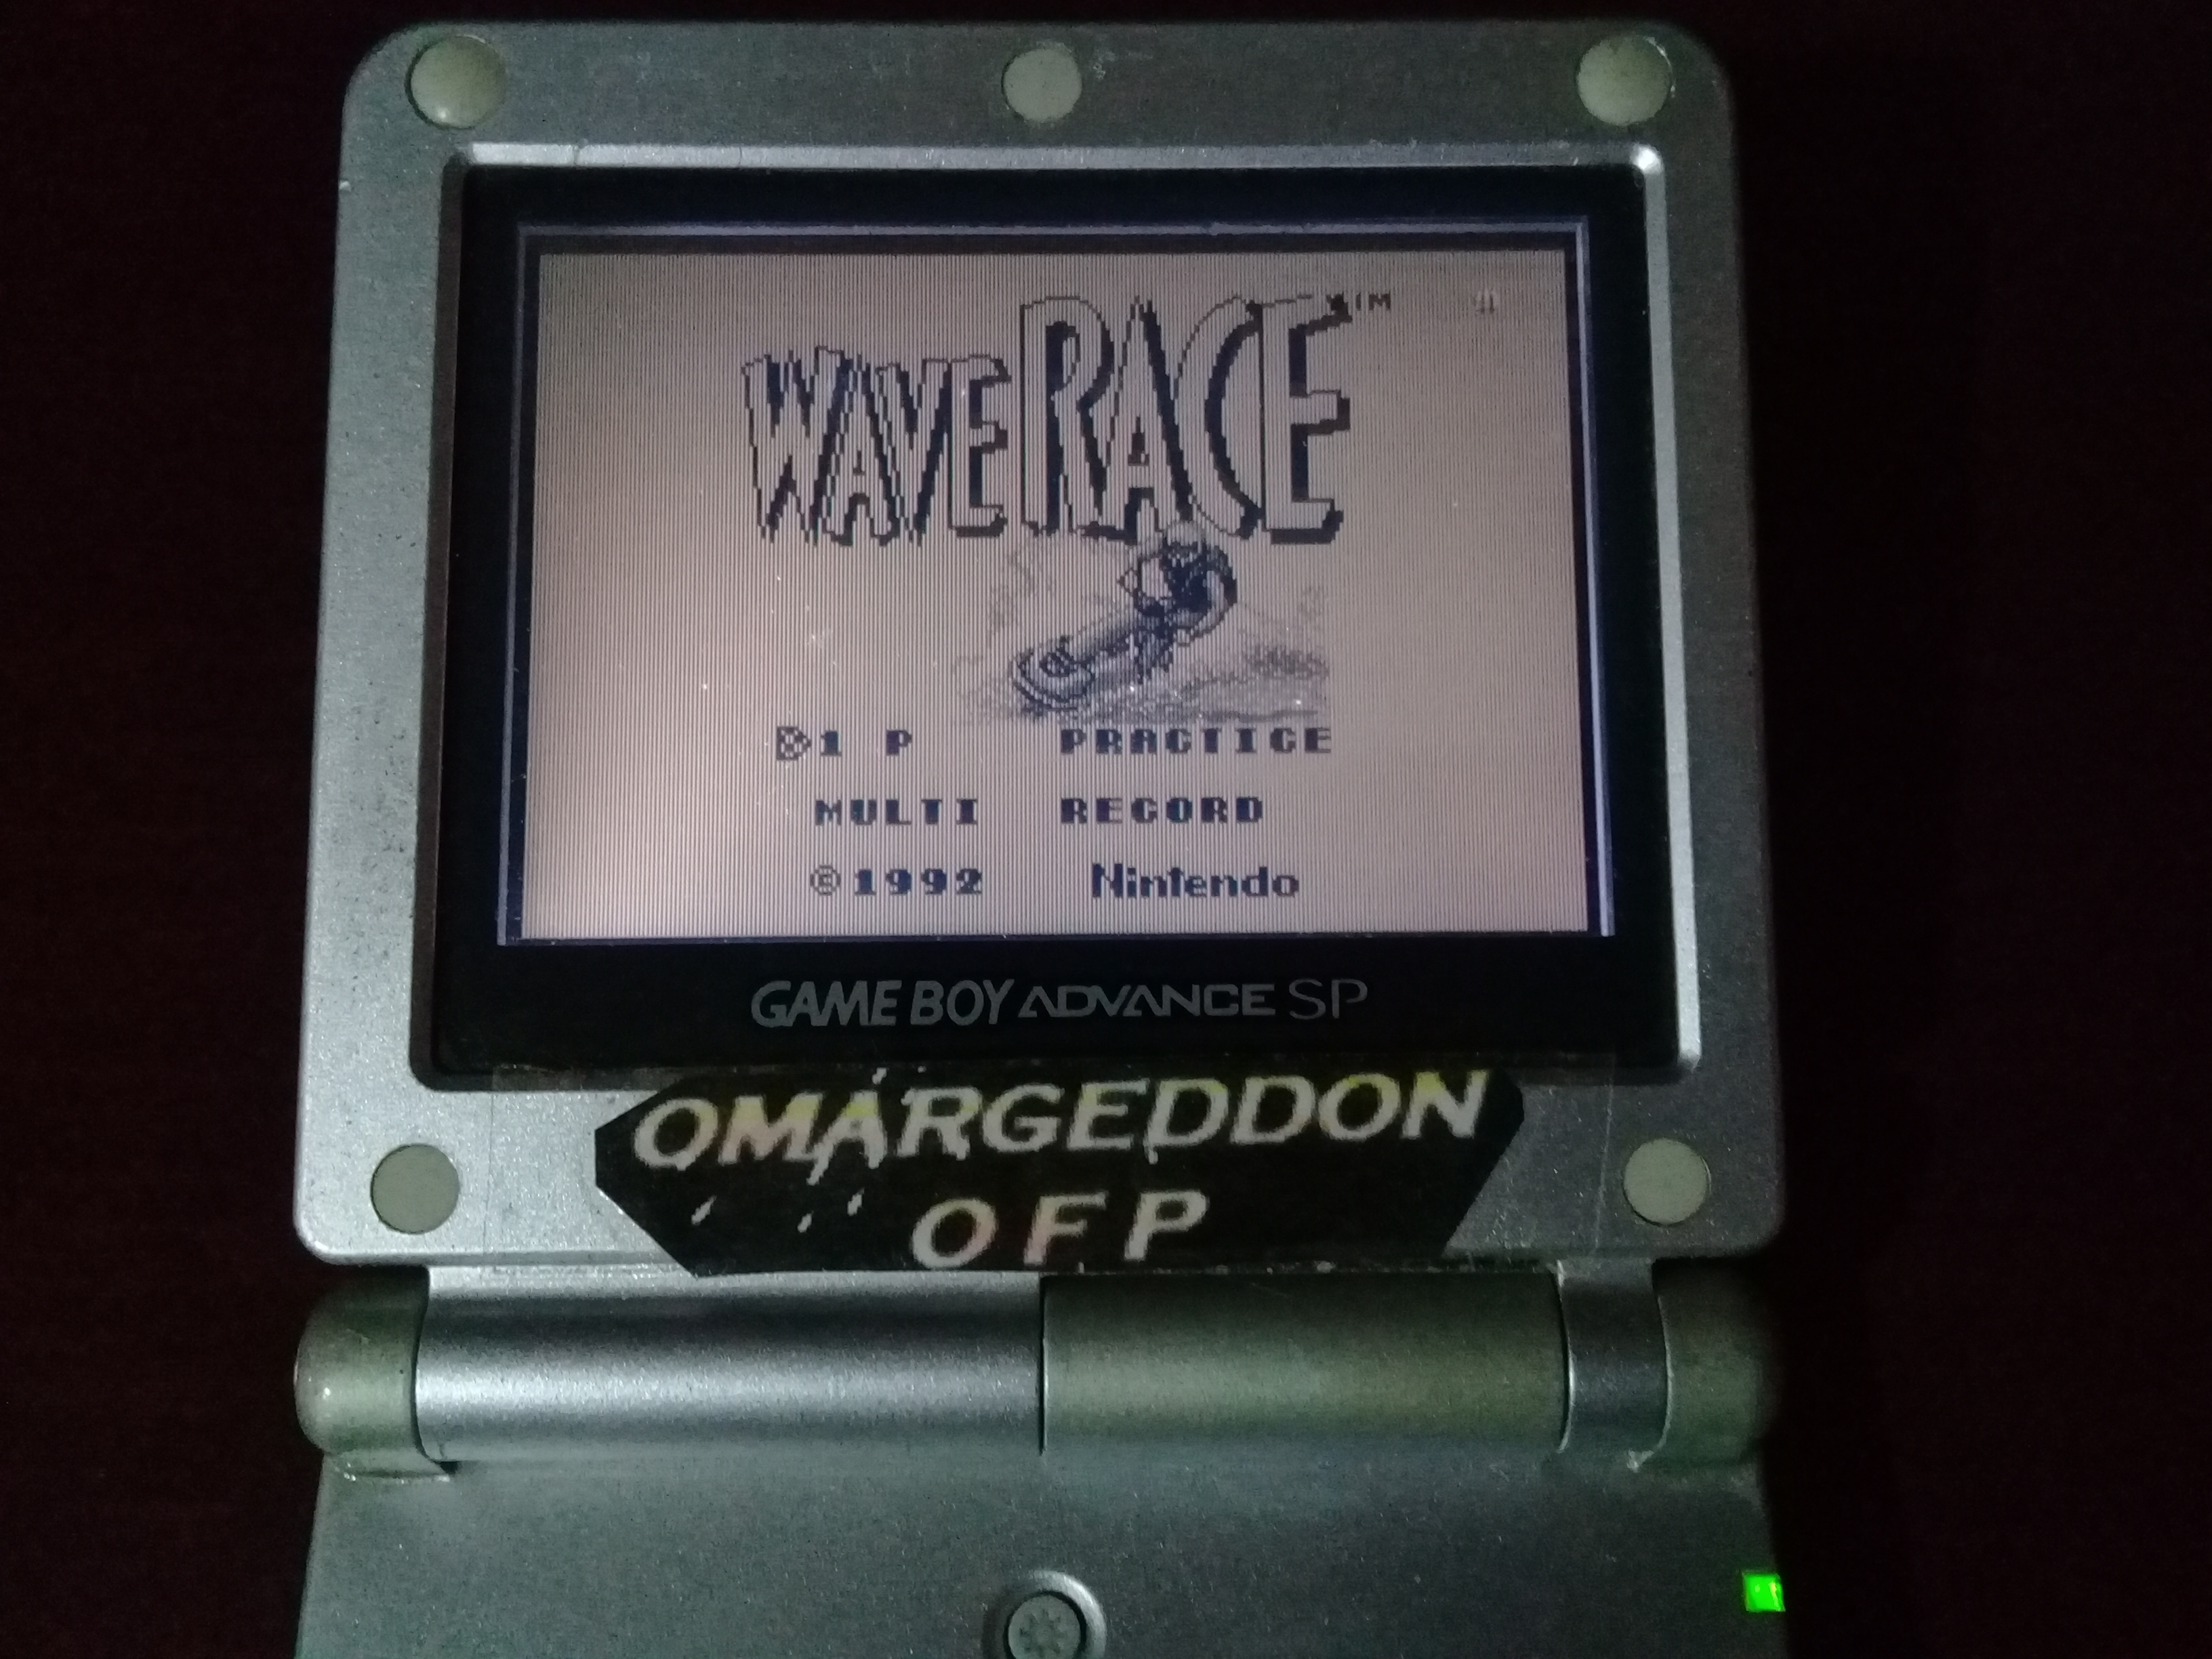 omargeddon: Wave Race: Circuit 2: Hawaii [550cc][Course Record] (Game Boy) 0:00:20.2 points on 2019-04-16 14:36:08